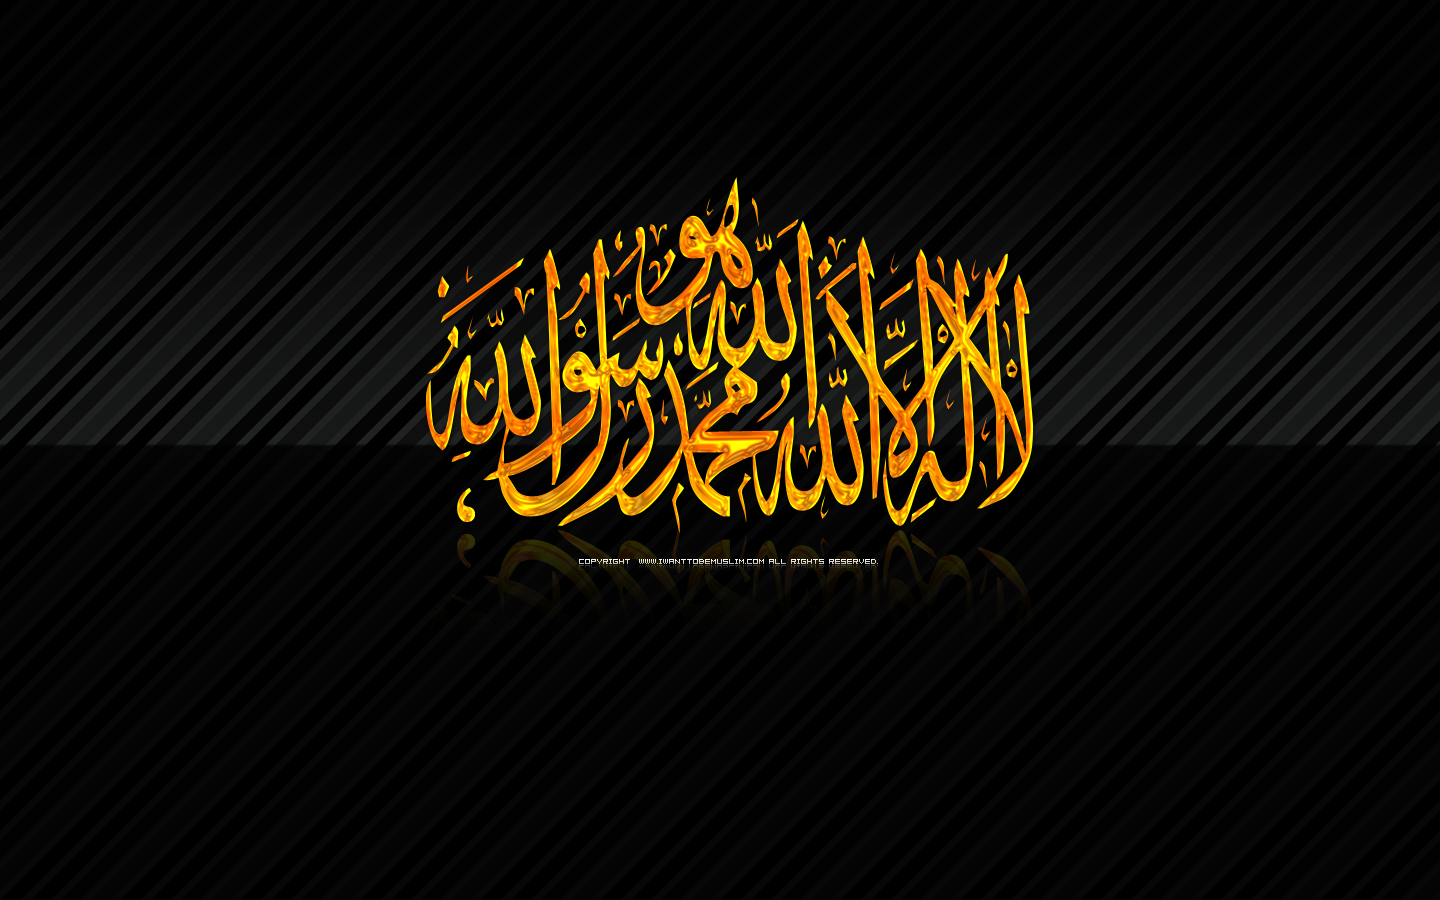 islam wallpaper (40 wallpapers) – adorable wallpapers